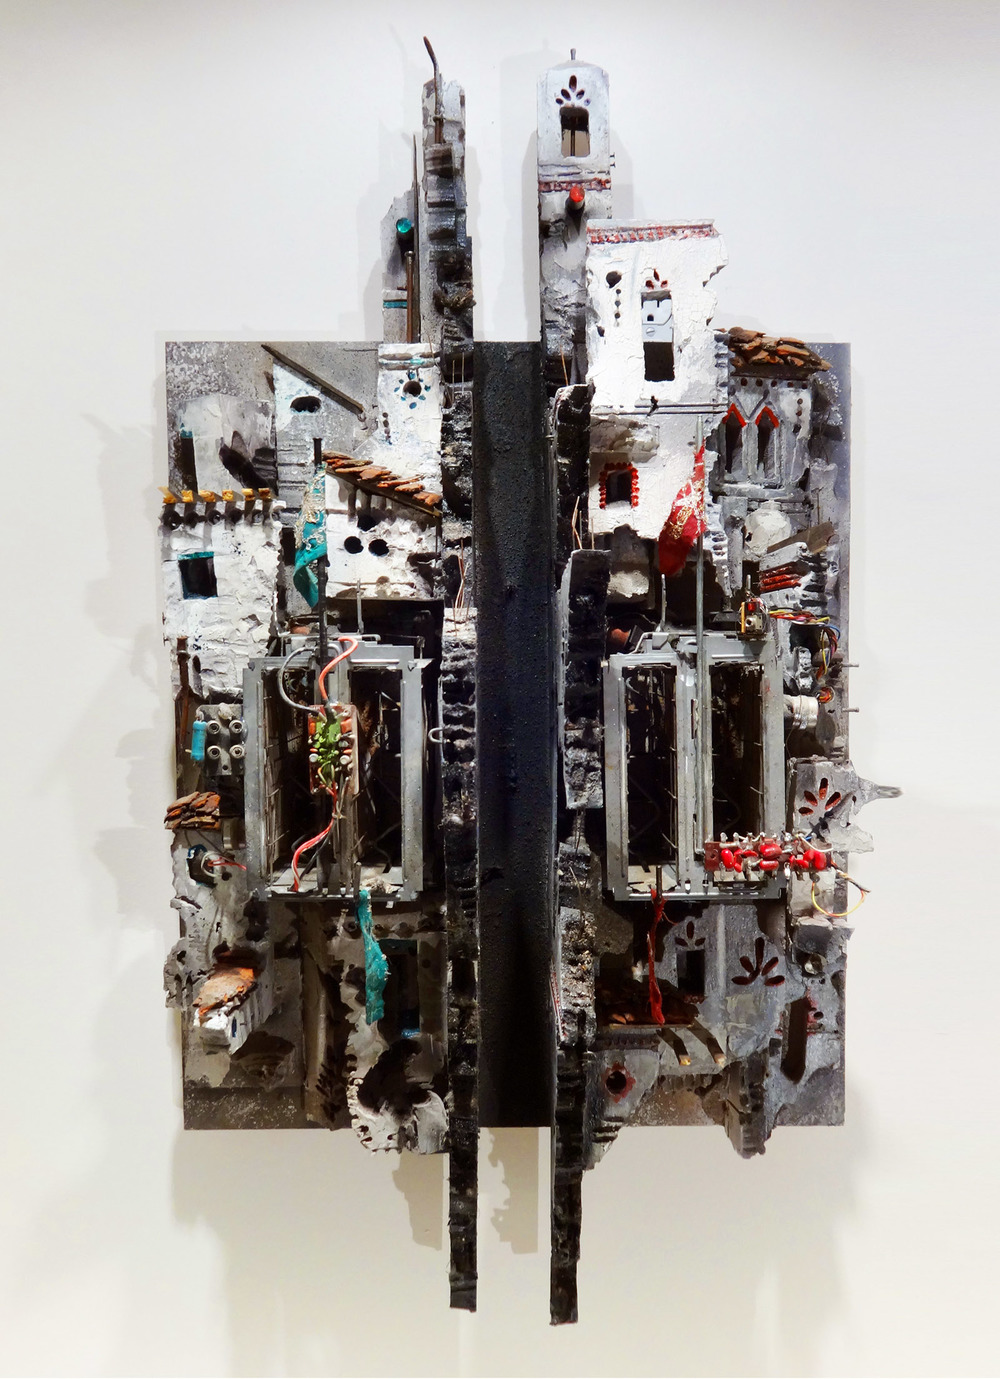 Mohamad Hafez,  Internal Conflict , 2014    Plaster, Rigid Foam, Paint, Fabric, Antique Toaster, Found Objects    30 x 24 x 12 inches    $20,000